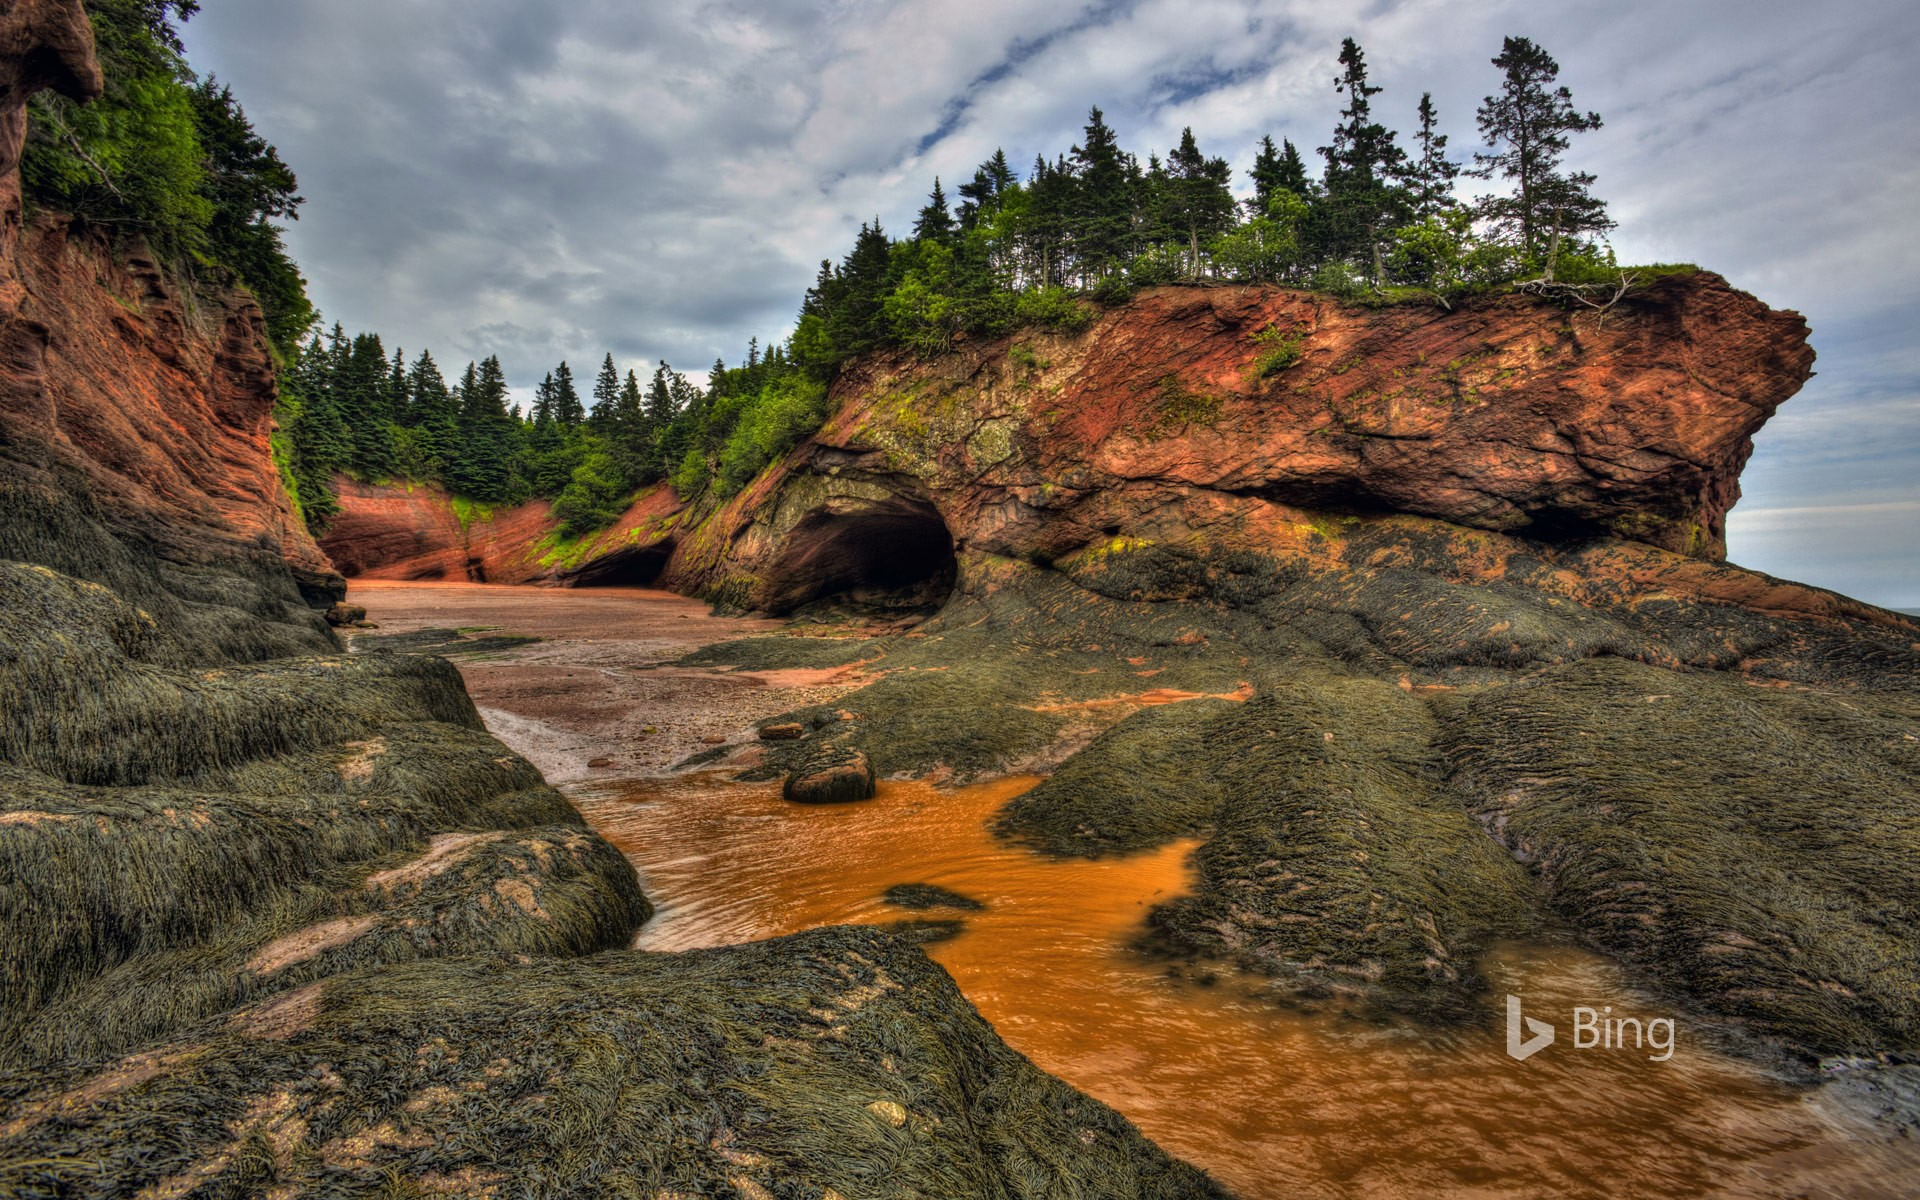 Caves and coastal features at low tide on the Bay of Fundy, near St. Martins, New Brunswick, Canada